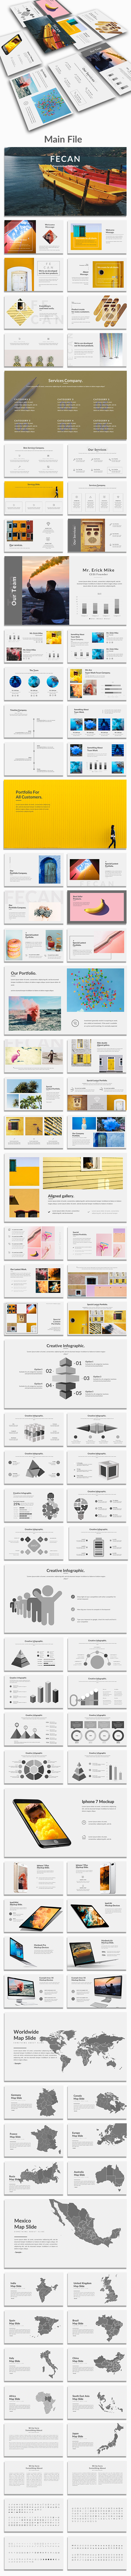 Fecan Minimal PowerPoint Template - Creative PowerPoint Templates